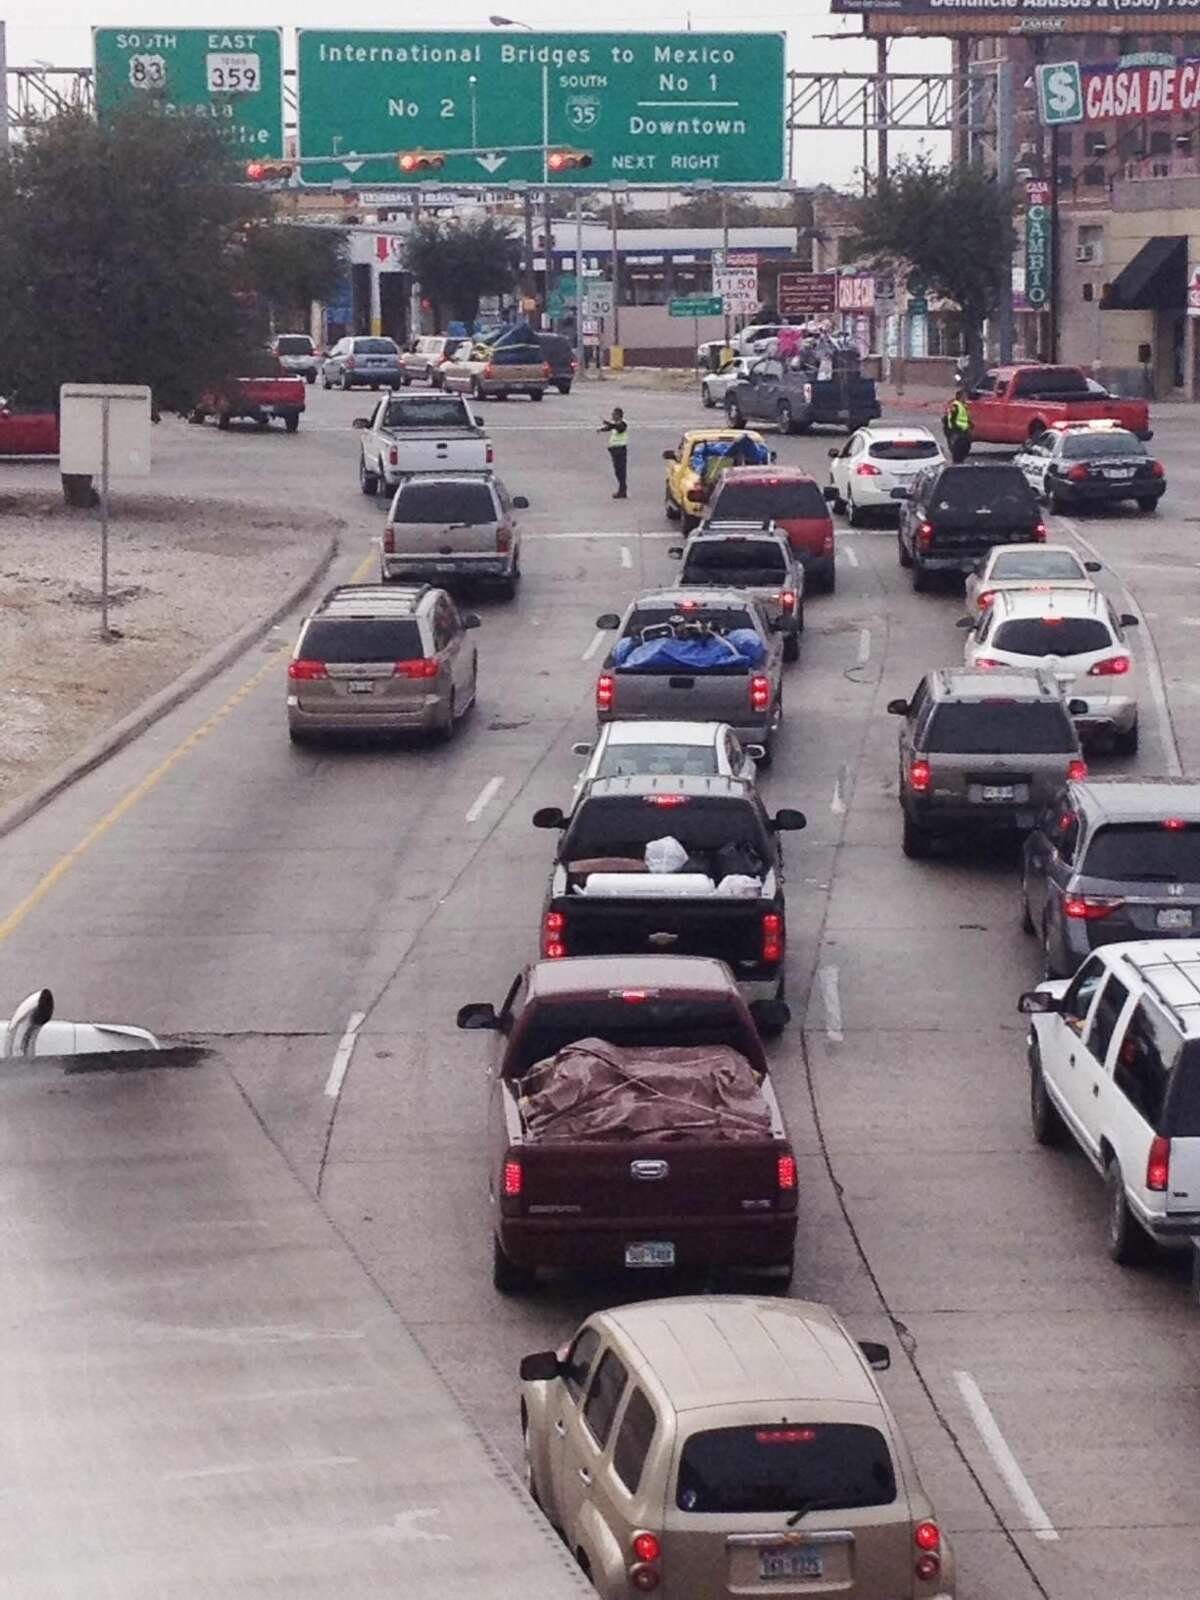 Laredo police officers direct traffic at Victoria Street and IH 35 Friday morning as paisanos make their way into Mexico Friday. (Photo by: Cuate Santos